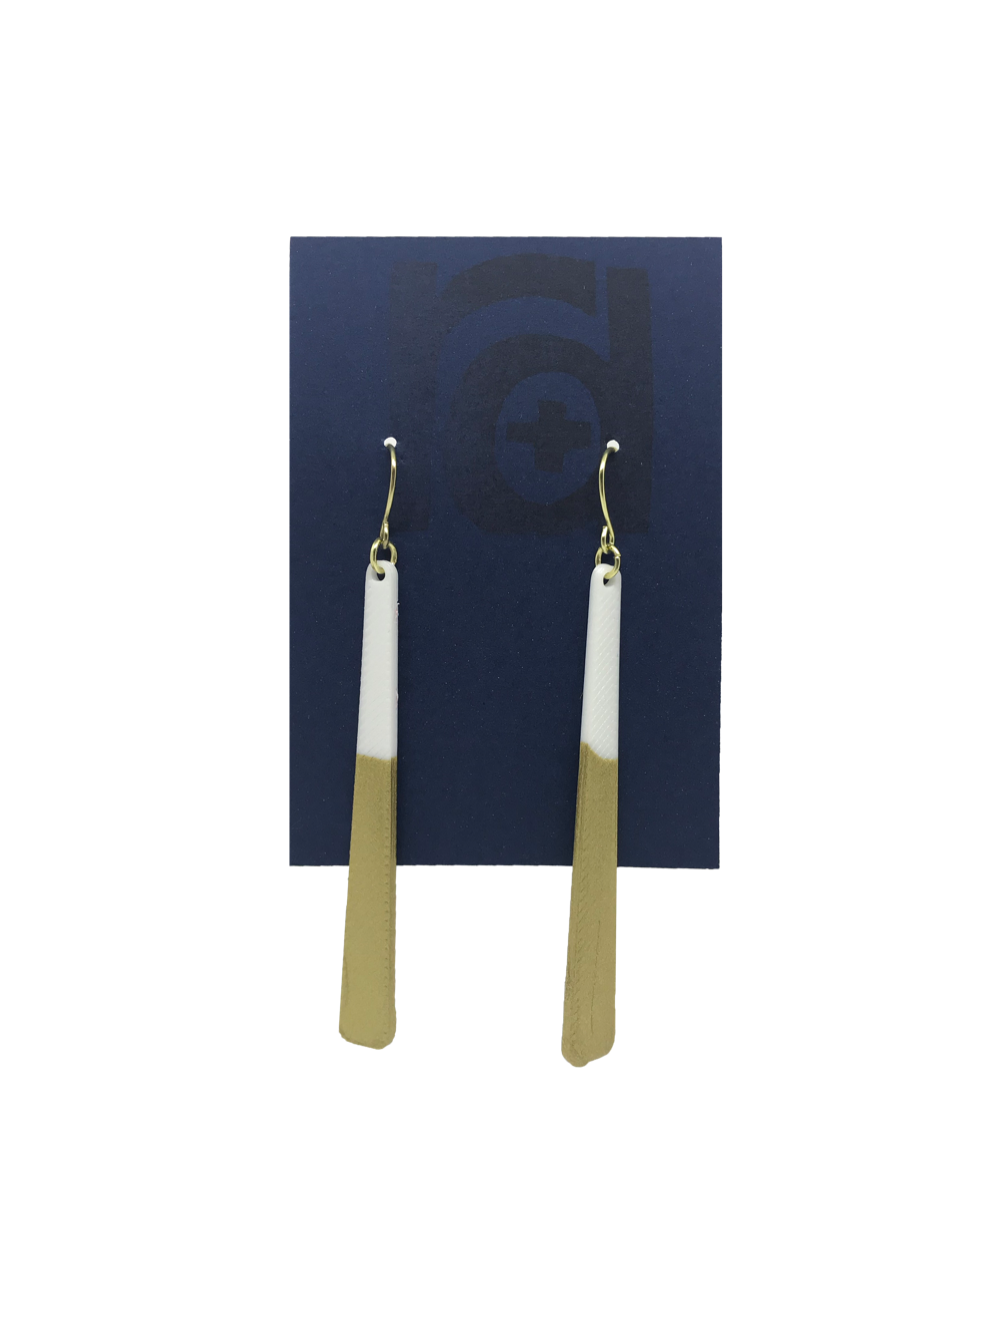 Shown on a sustainable dark blue earring card, these earrings are long dangles that flare out slightly. The white plant based earring is dipped into metallic gold paint to give a perfect shimmering accent.